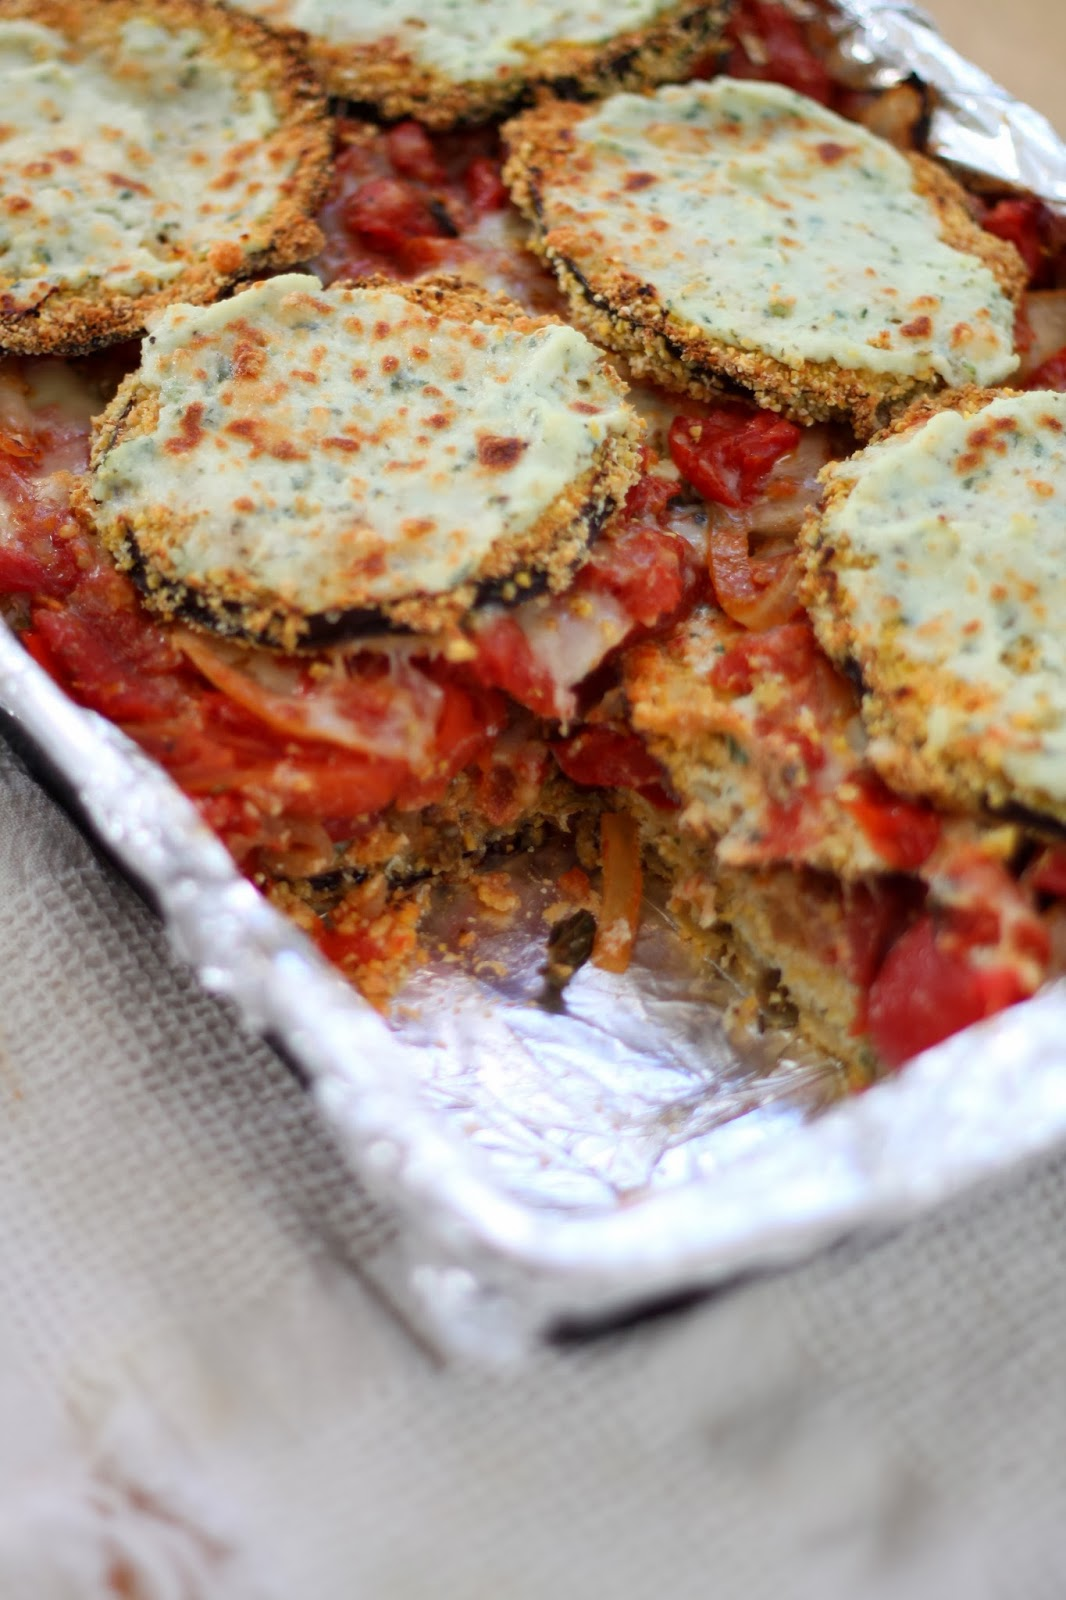 ... Dinners: Cornmeal Crusted Eggplant and Roasted Tomato Lasagne